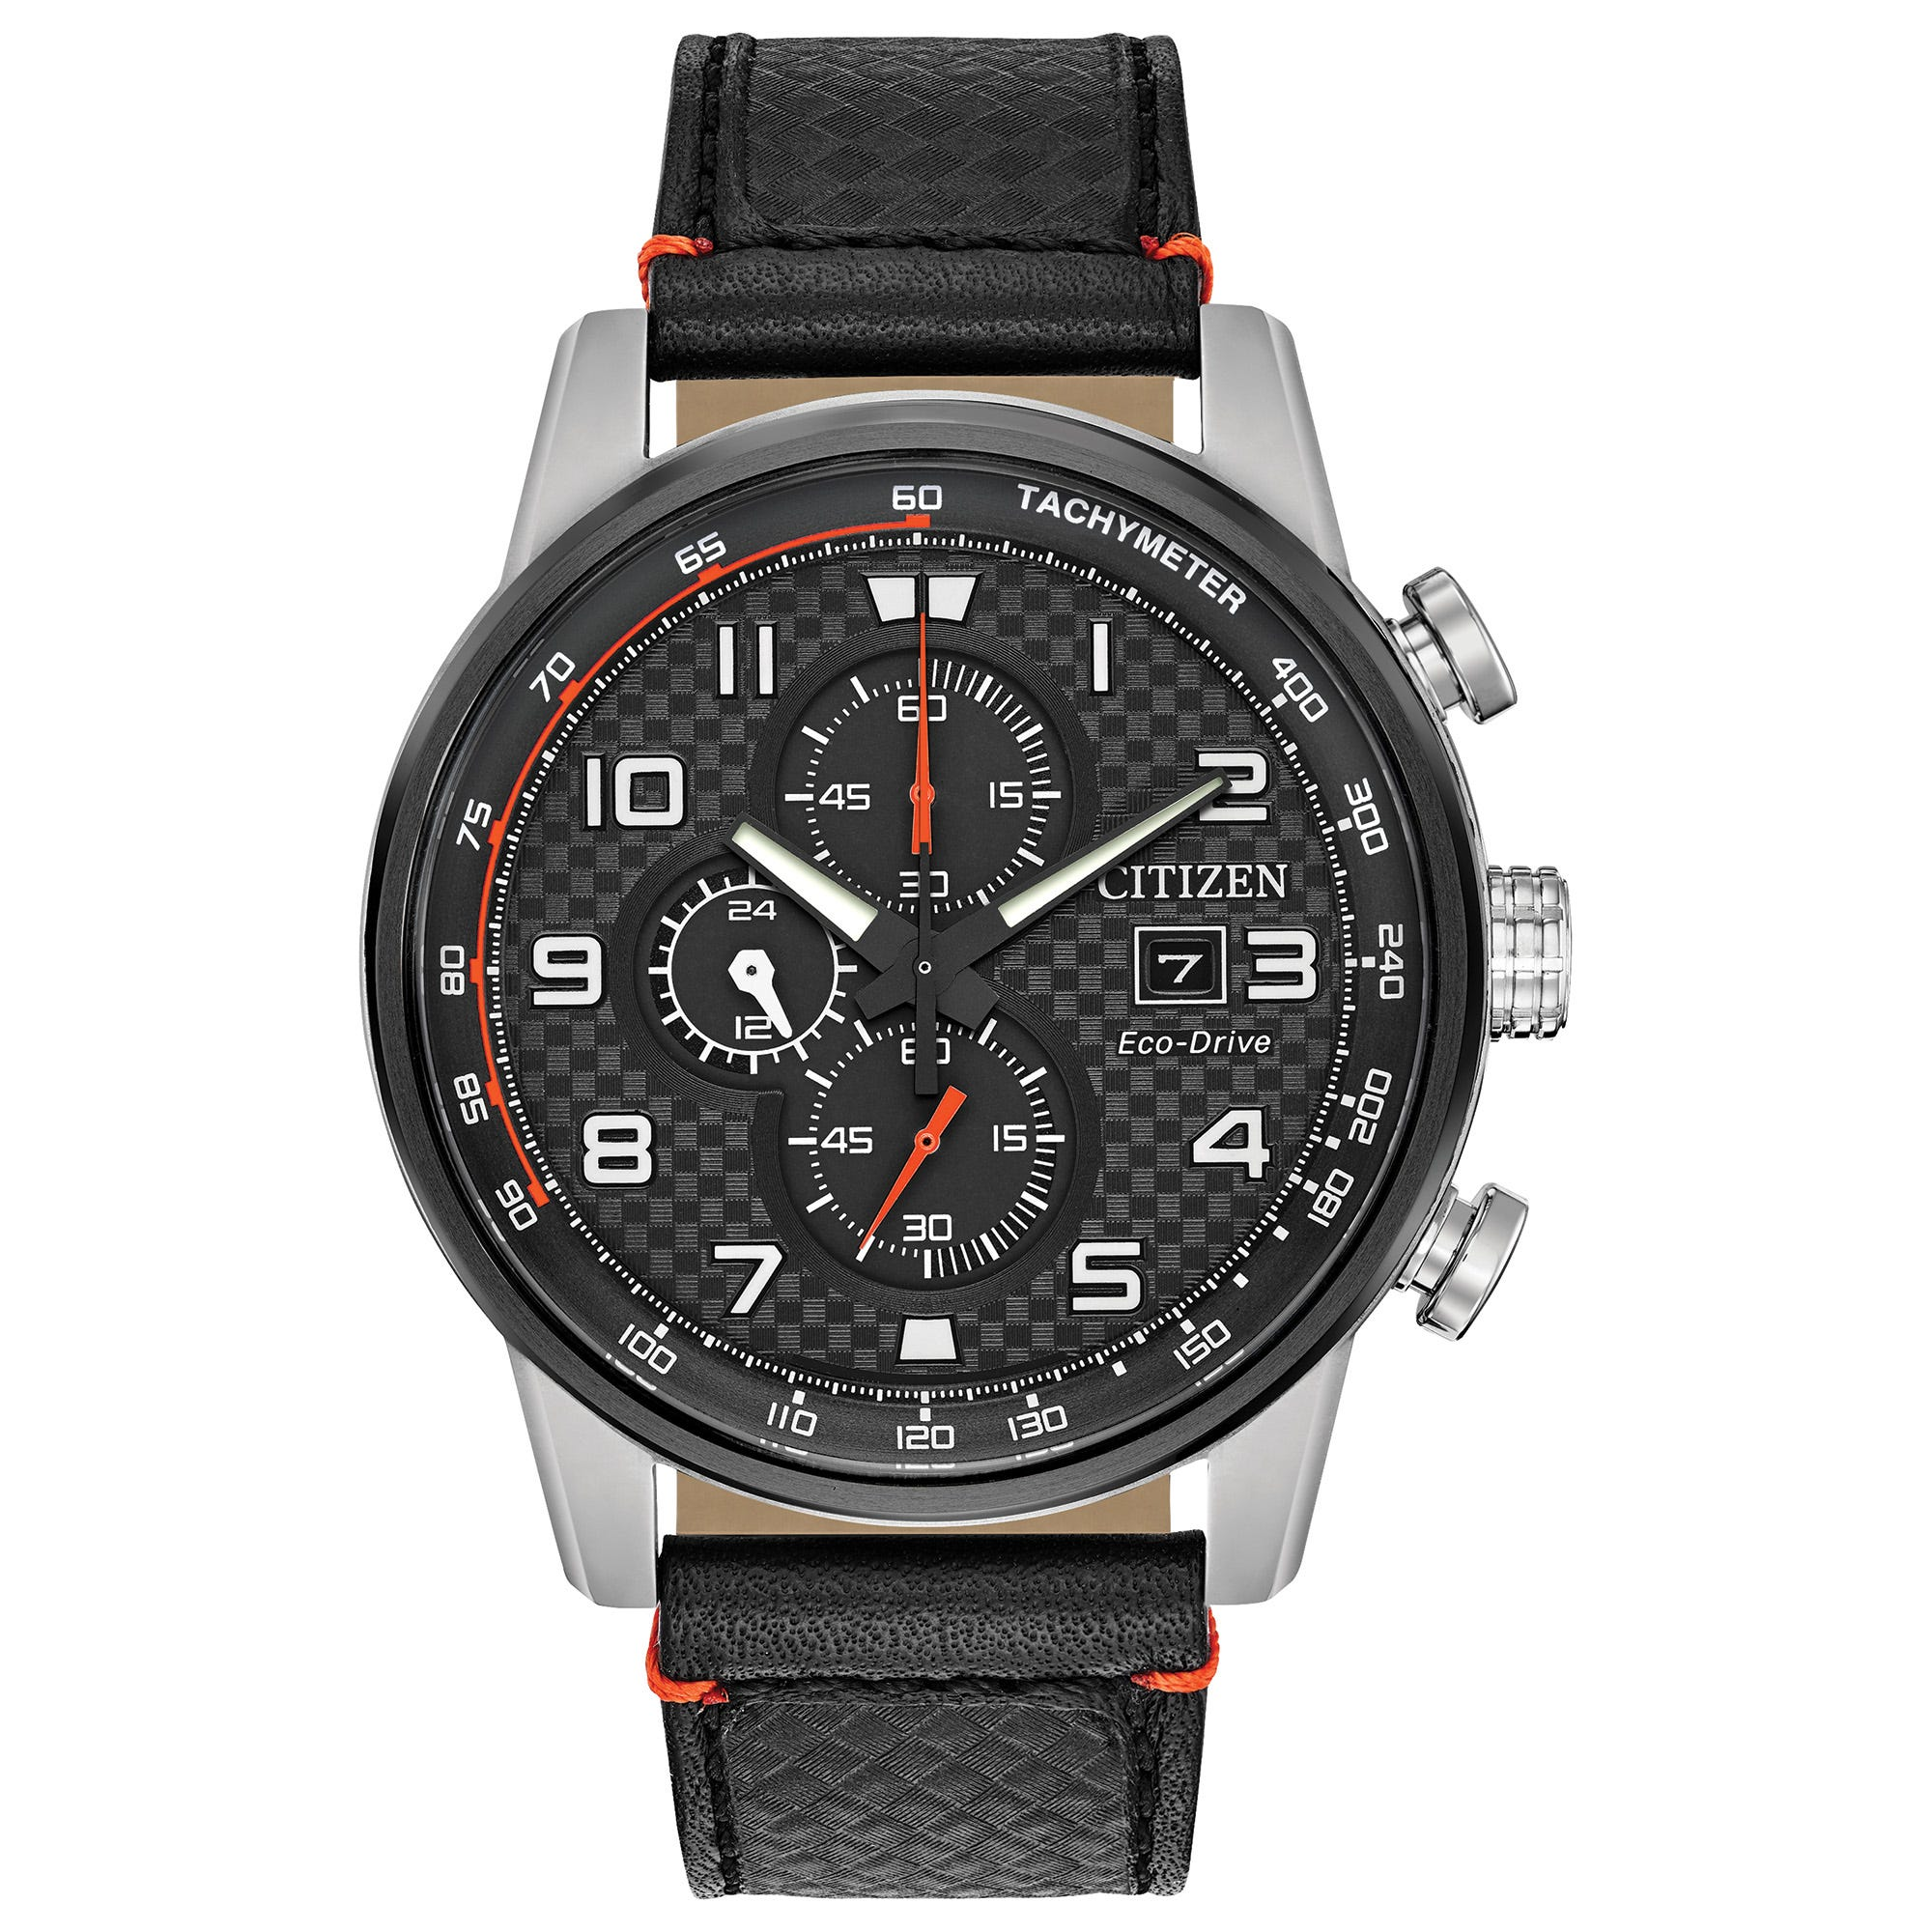 Citizen Men's Eco-Drive Primo Black Leather Watch CA0681-03E